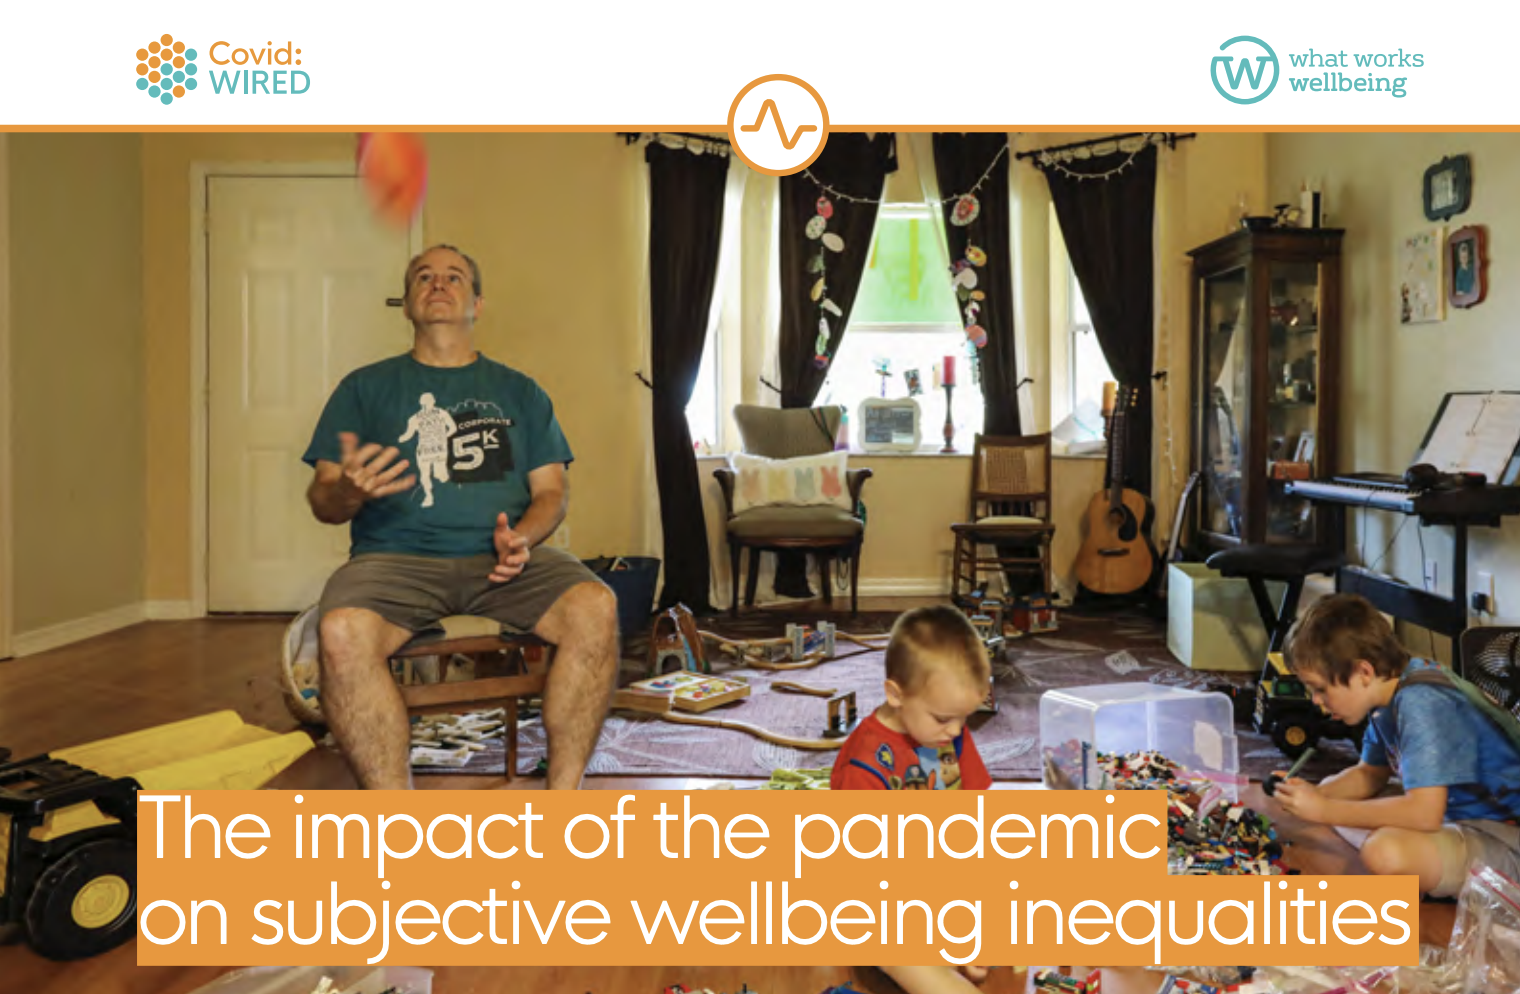 The impact of the pandemic on subjective wellbeing inequalities